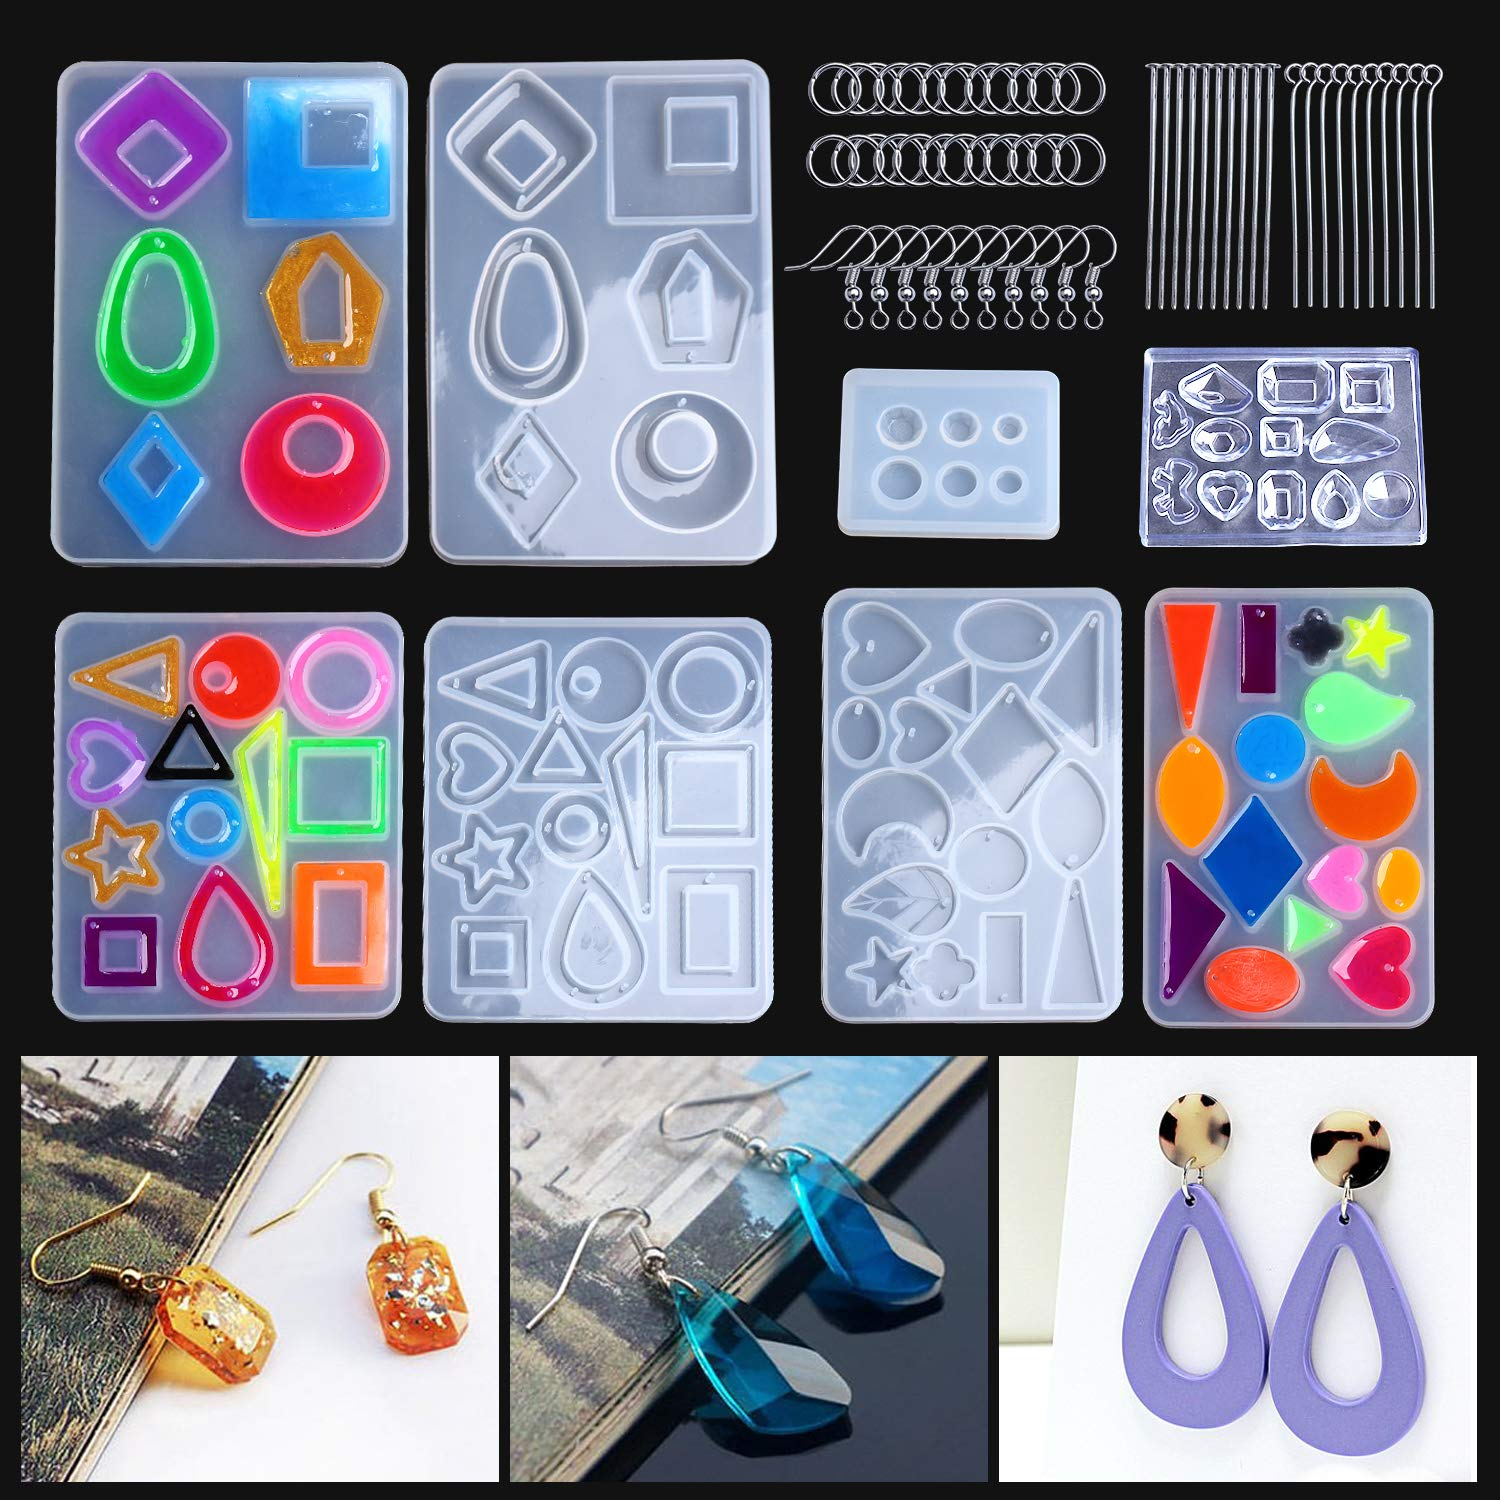 3 Pairs Earring Resin Molds with 2pcs Stud Earring Jewelry Epoxy Resin Silicone Molds Including Earring Hooks, Jump Rings, Head/Eye Pins for Resin Jewelry, Pendant Crafting, Resin Crafts DIY by LET'S RESIN